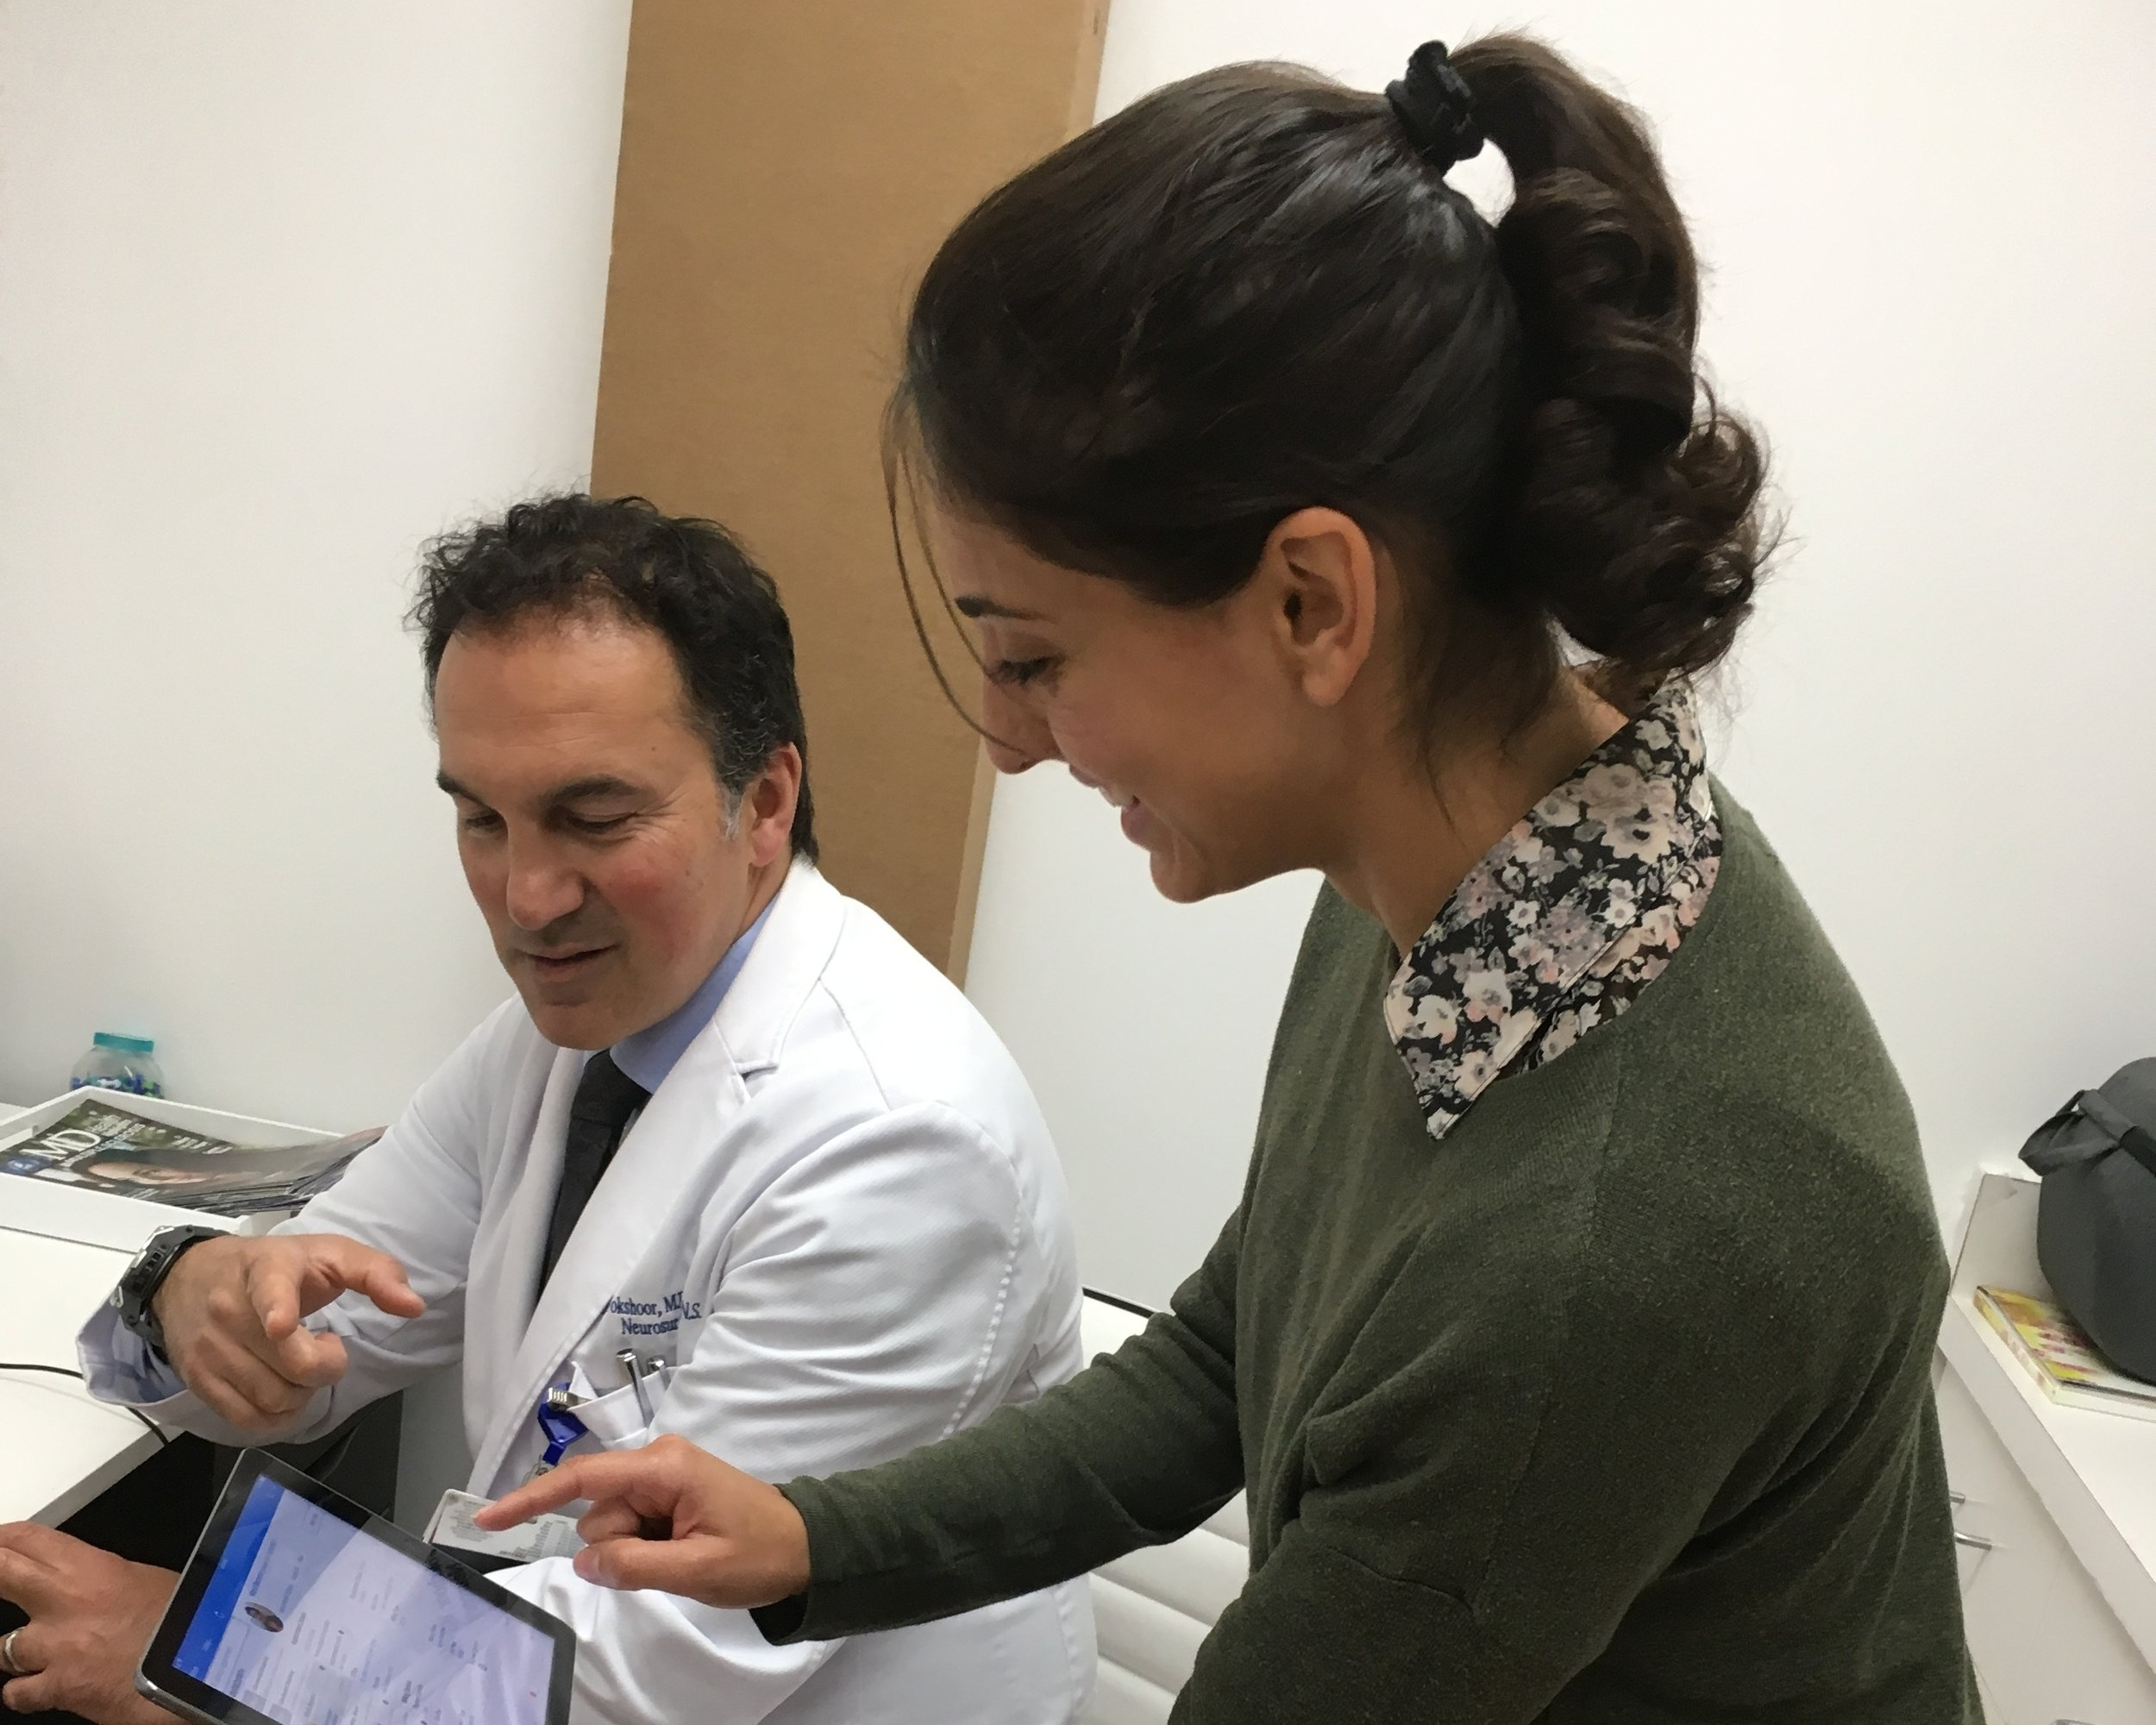 Scribe during Clinic - We will teach you how to scribe for Dr. Vokshoor during his clinic. You will get to meet and interact with multiple patients, and observe various appointments from neurosurgical consultations to post-operative follow ups.